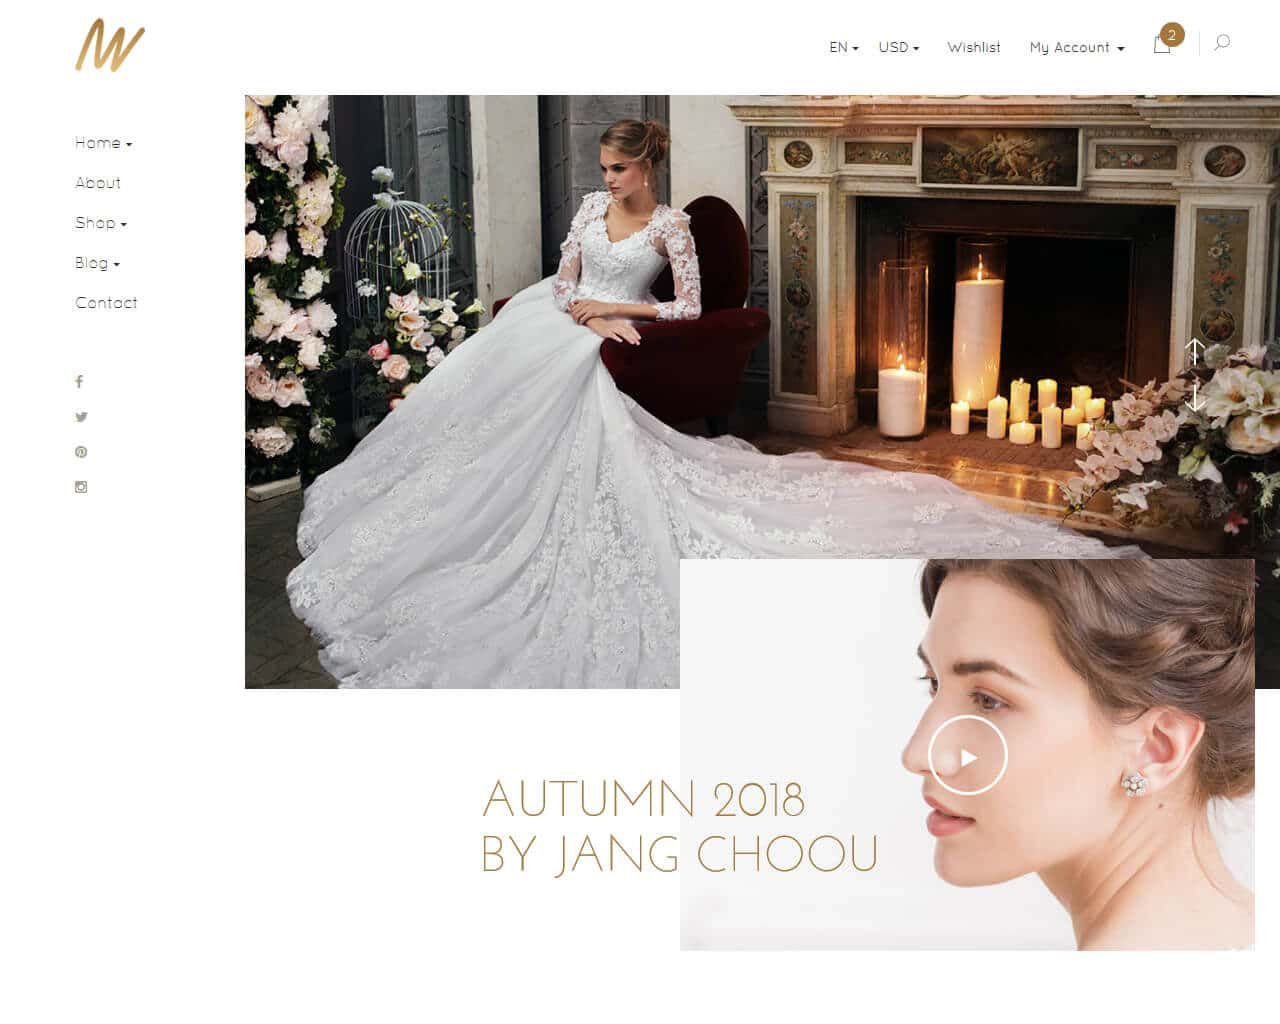 The VOW Website Template